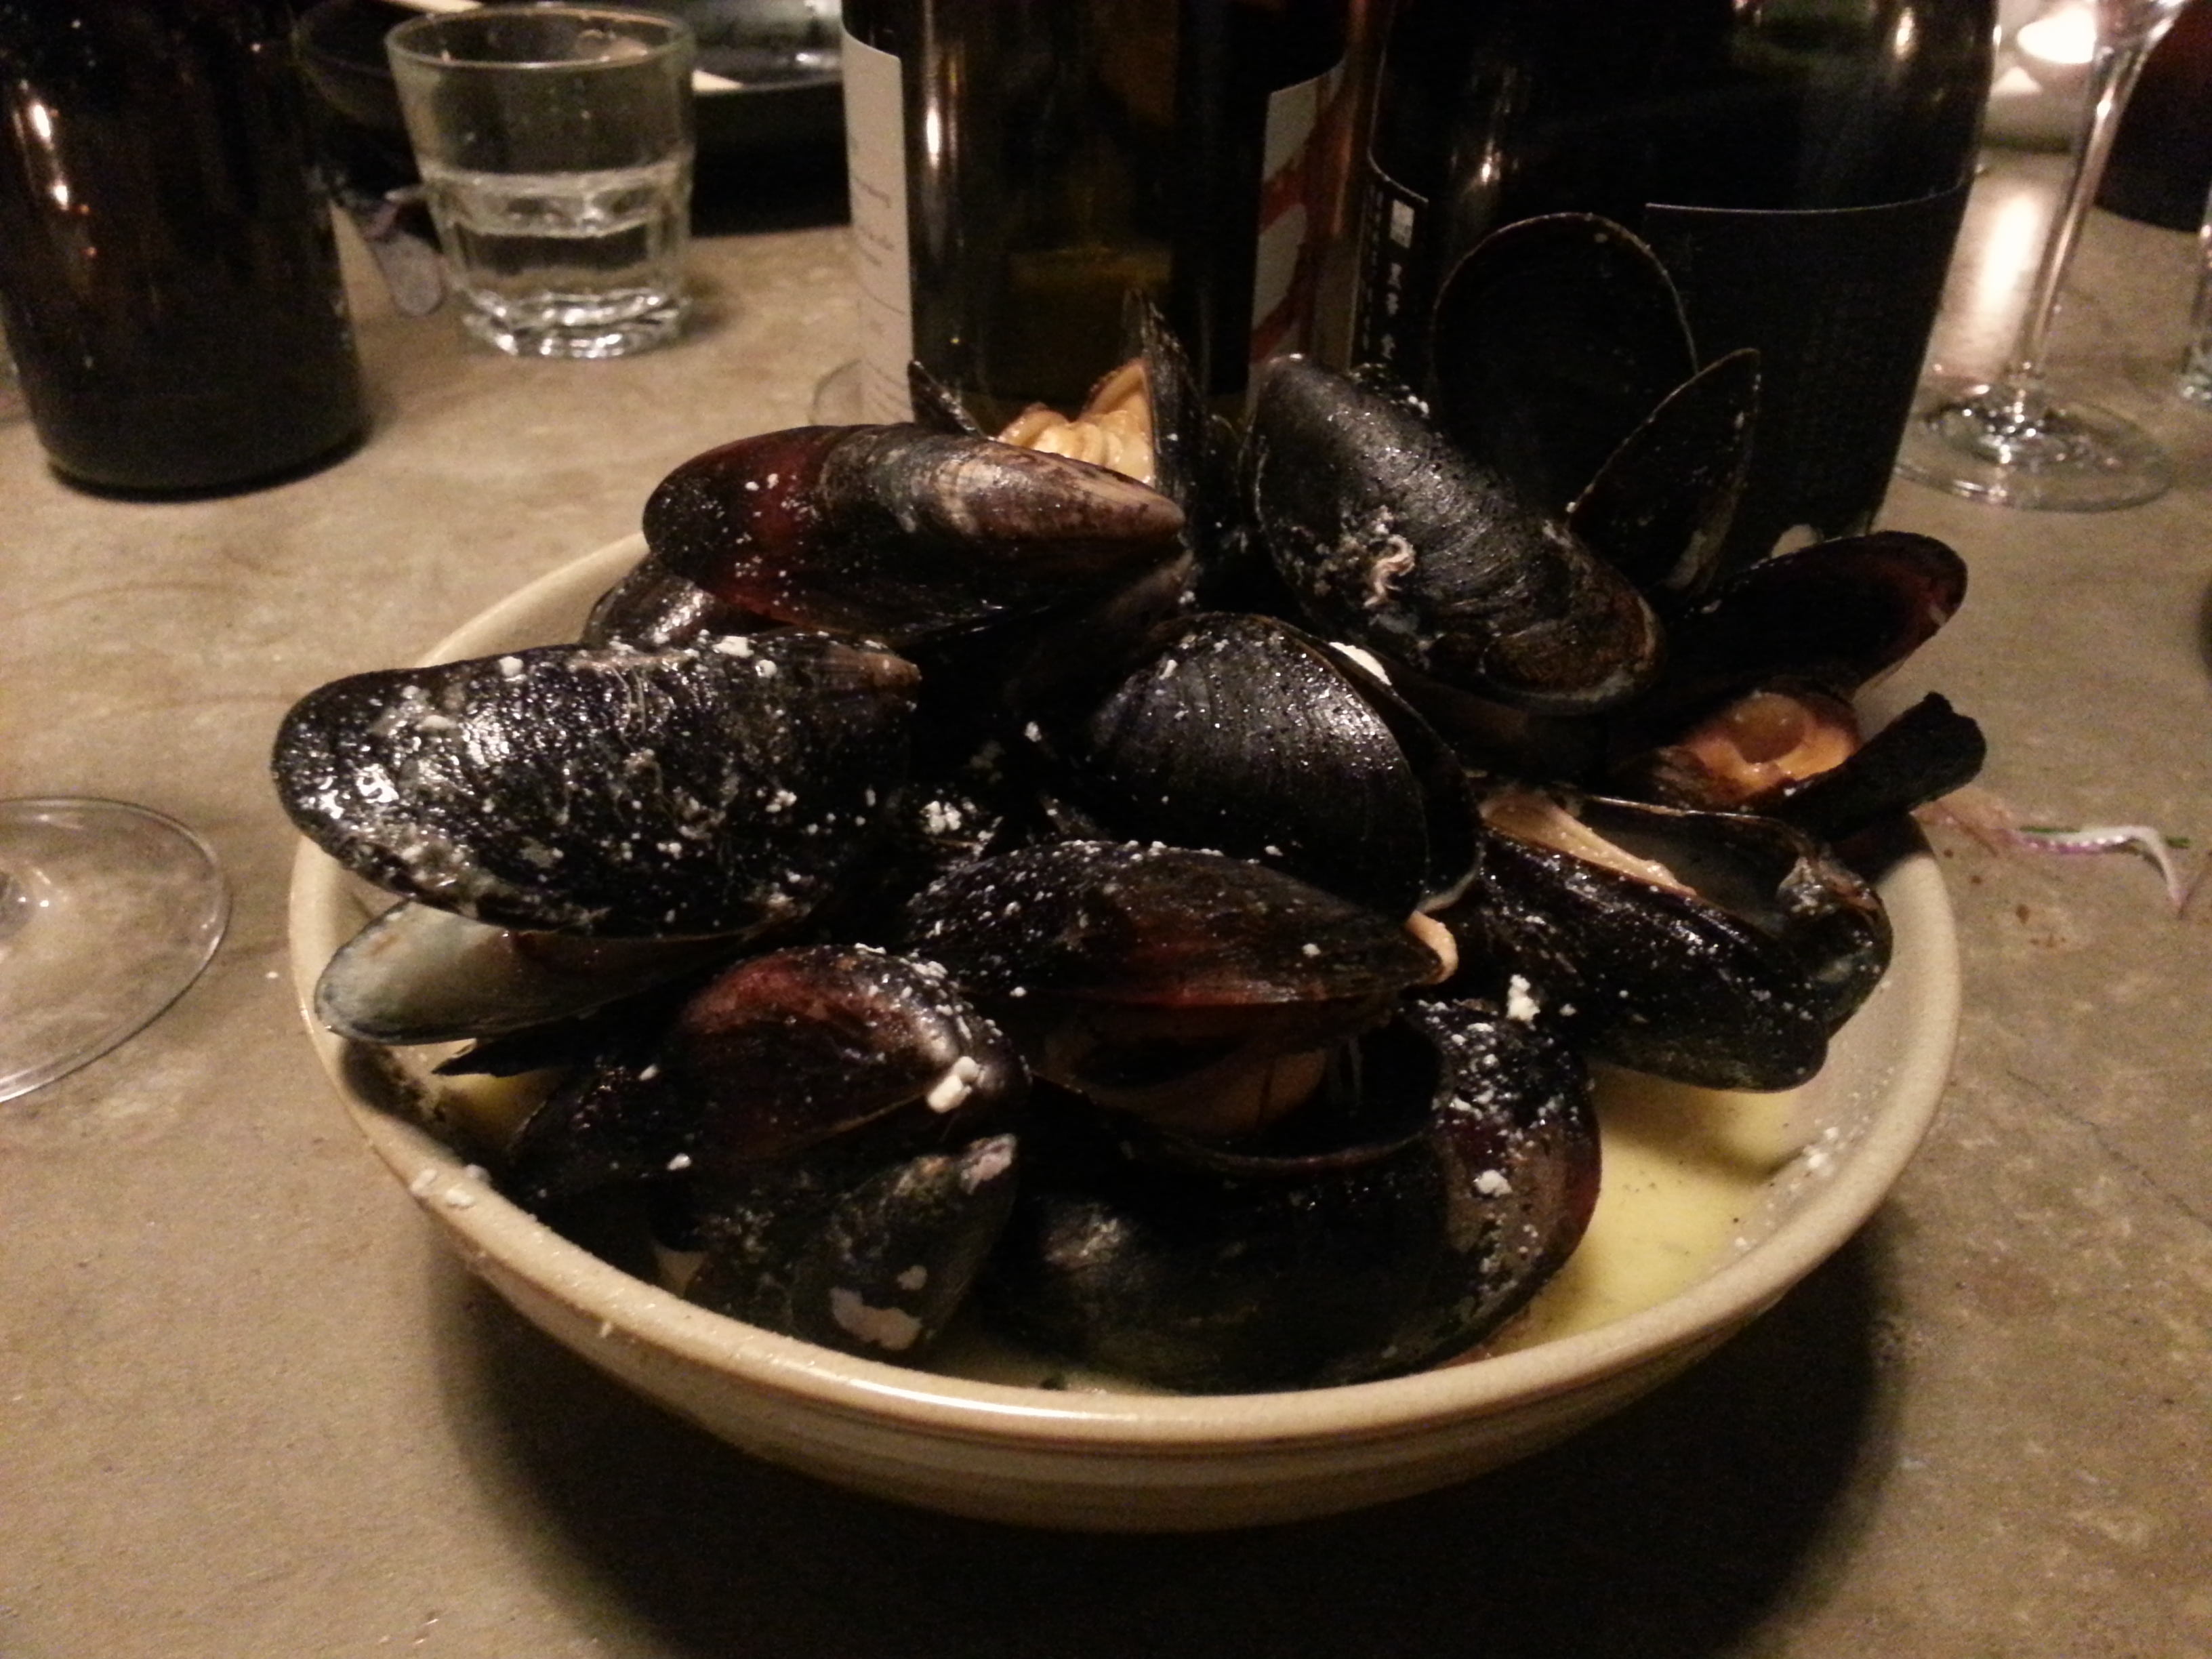 Dertien and Yama - Mussels in cream sauce